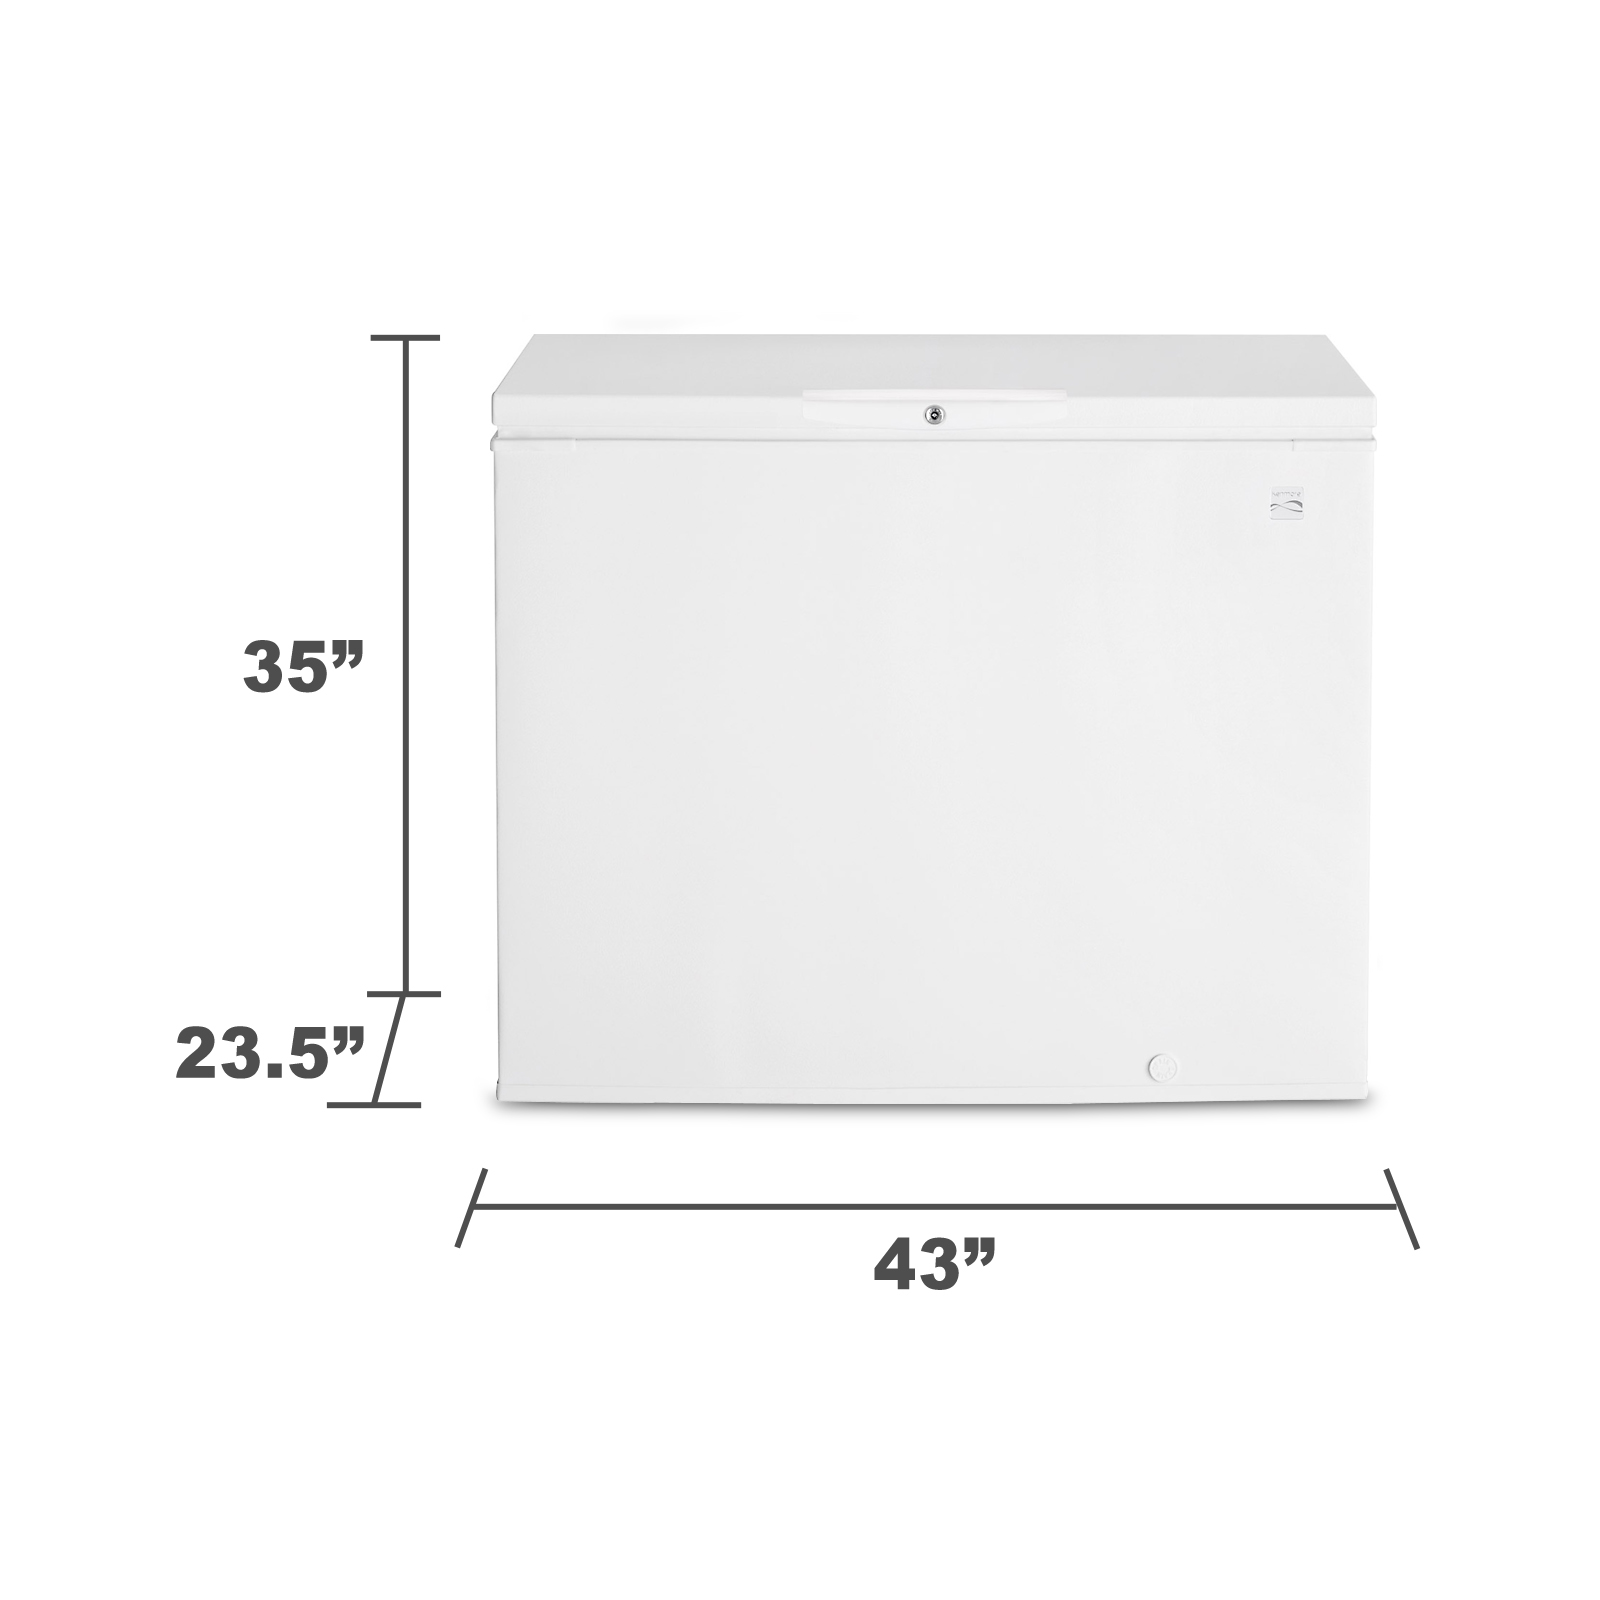 Kenmore 12912 9.1 cu. ft. Chest Freezer - White